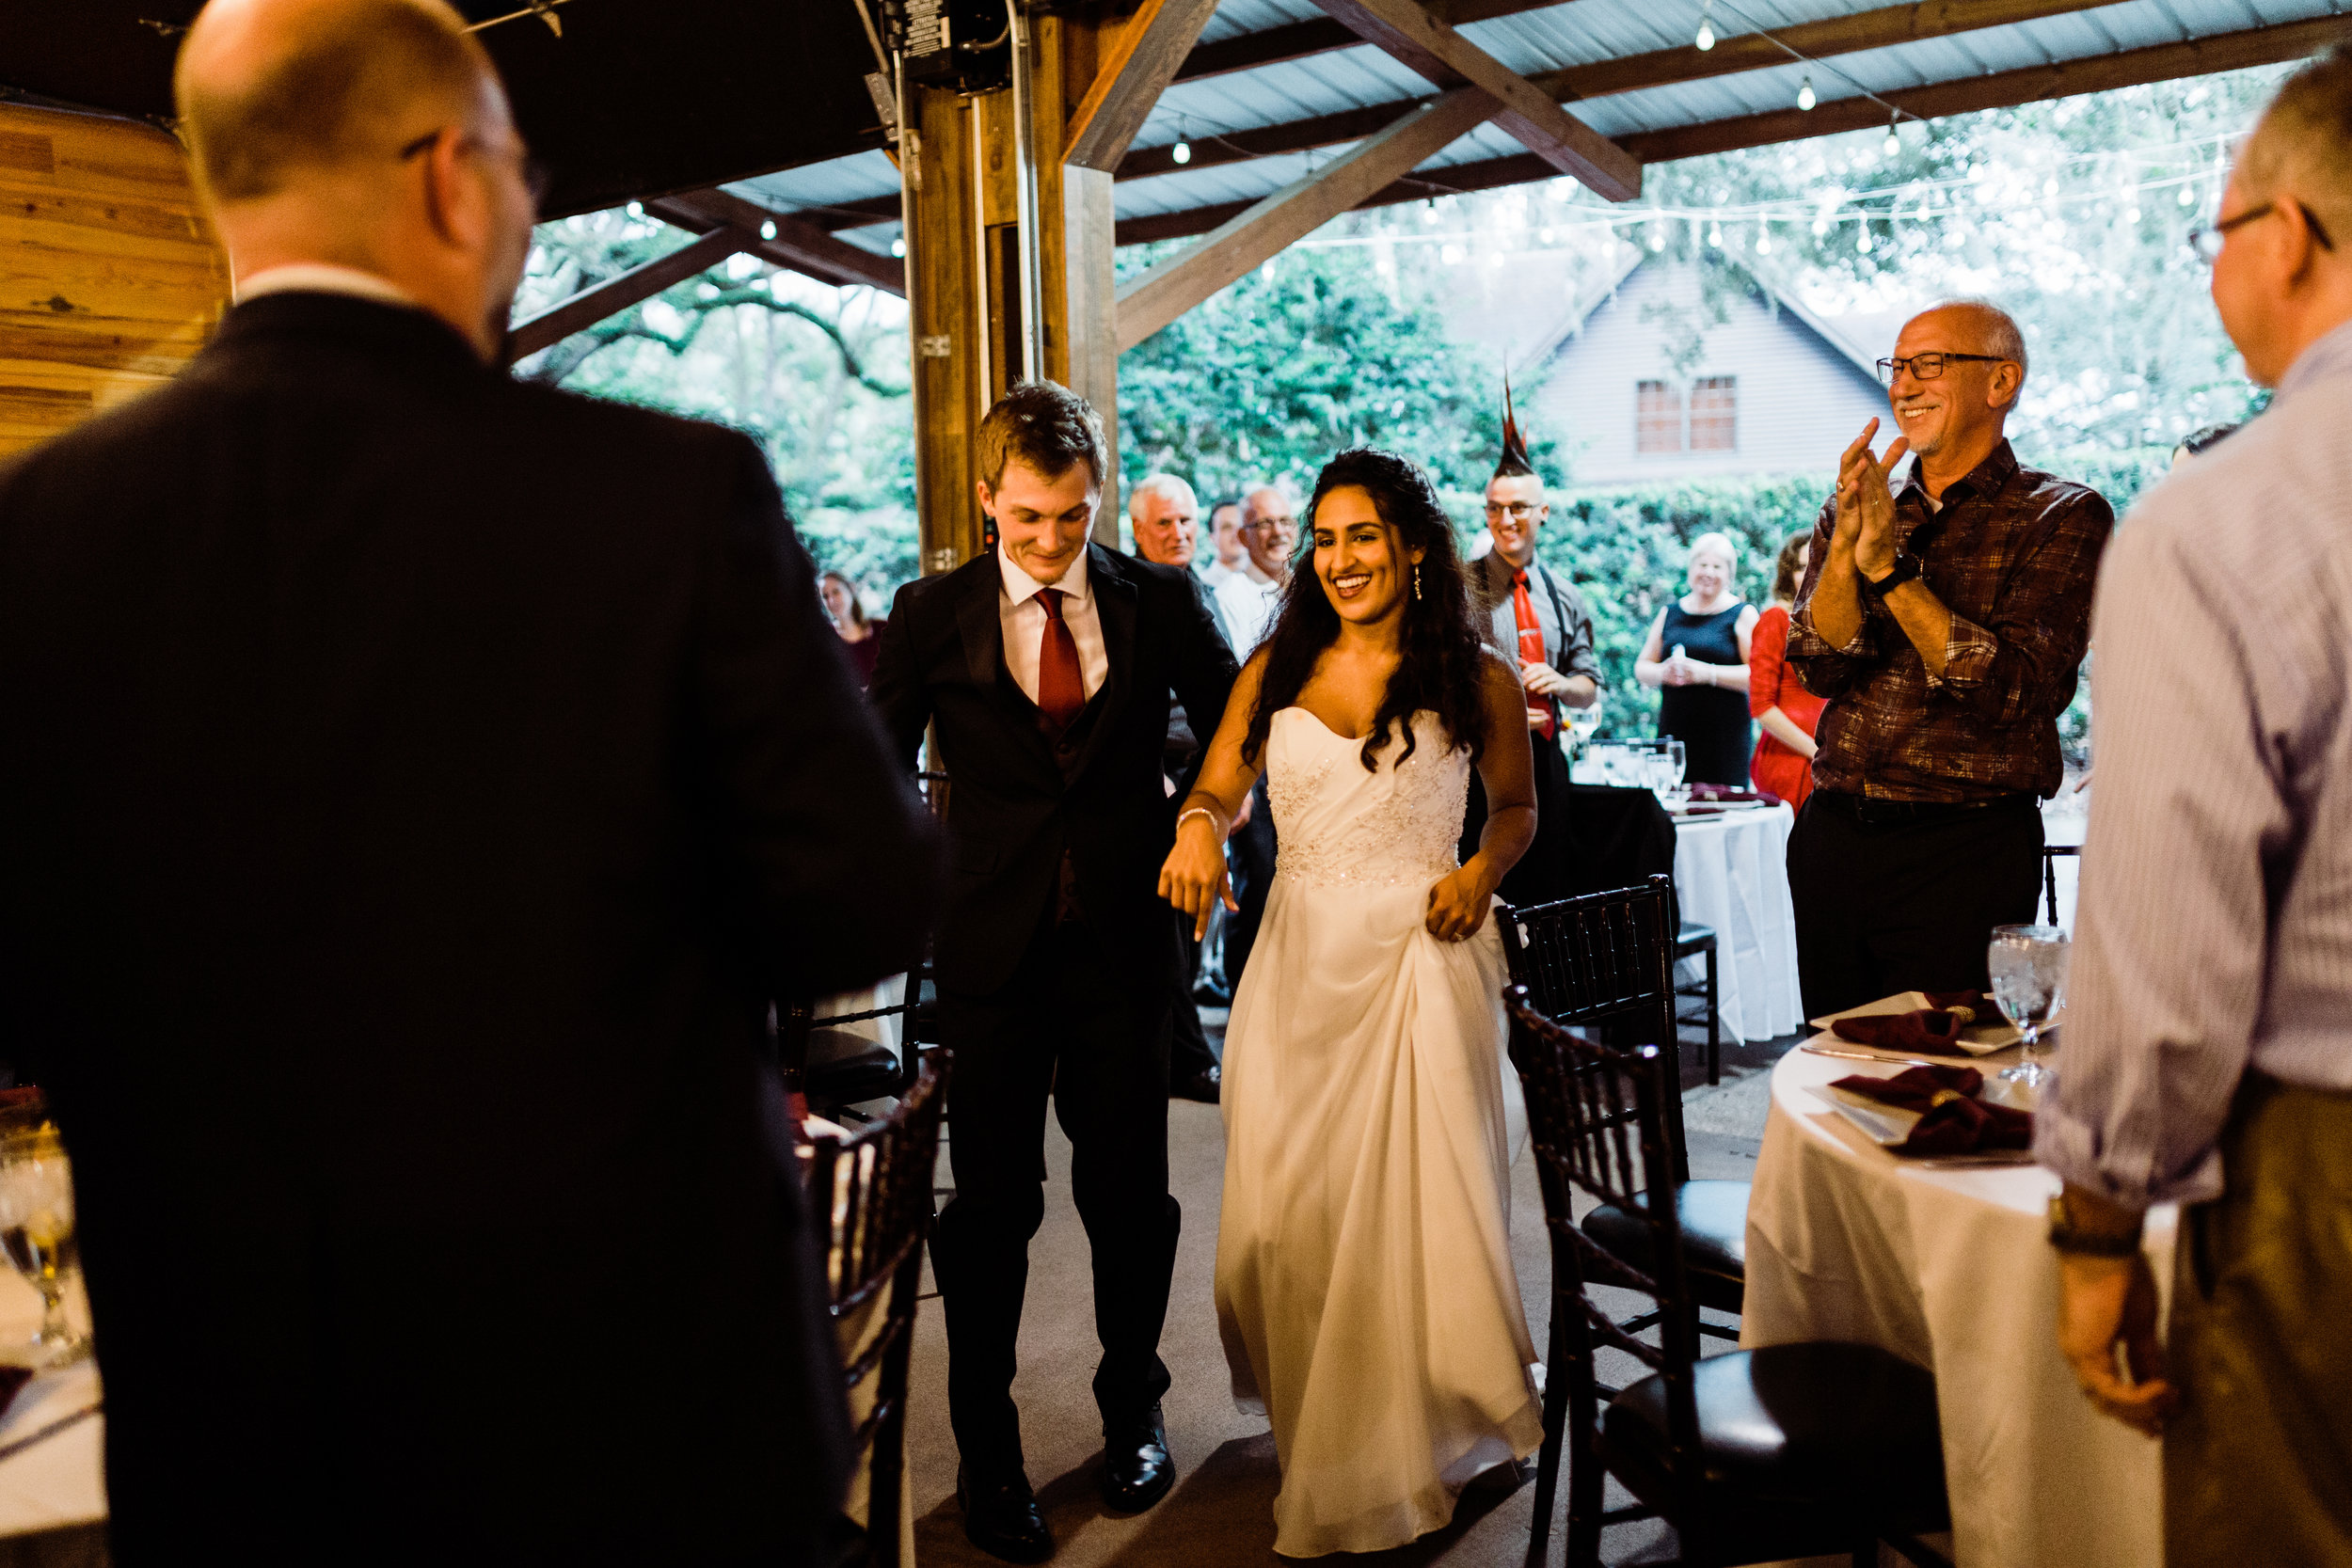 2017.10.08 Zach and Ashley Courson Wedding Club Lake Plantation (635 of 1079).jpg